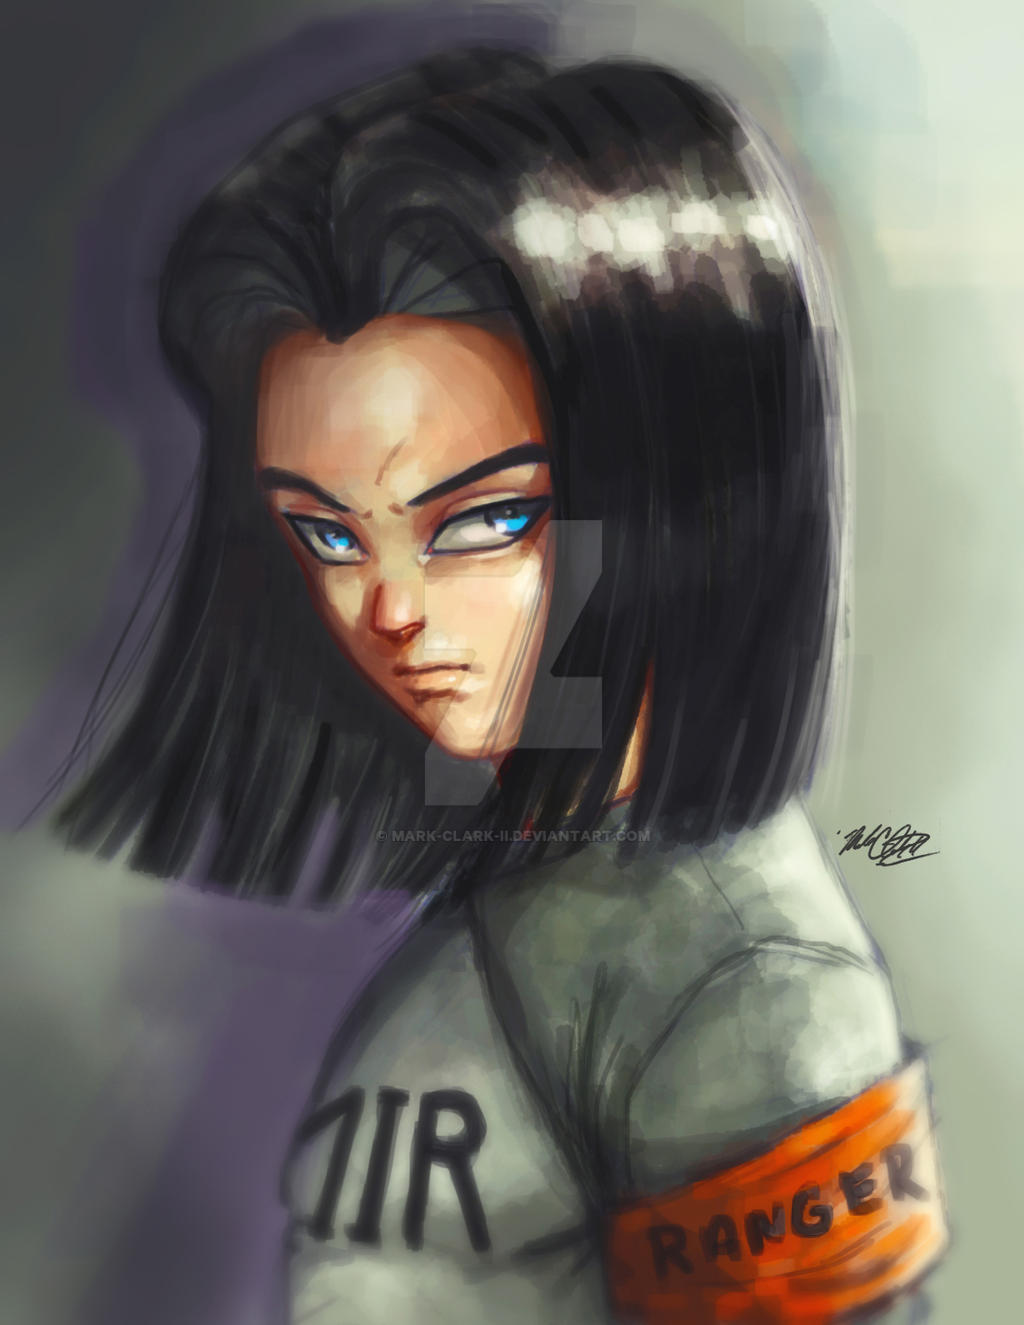 Android17 Dragon Ball Super By Mark Clark Ii On Deviantart